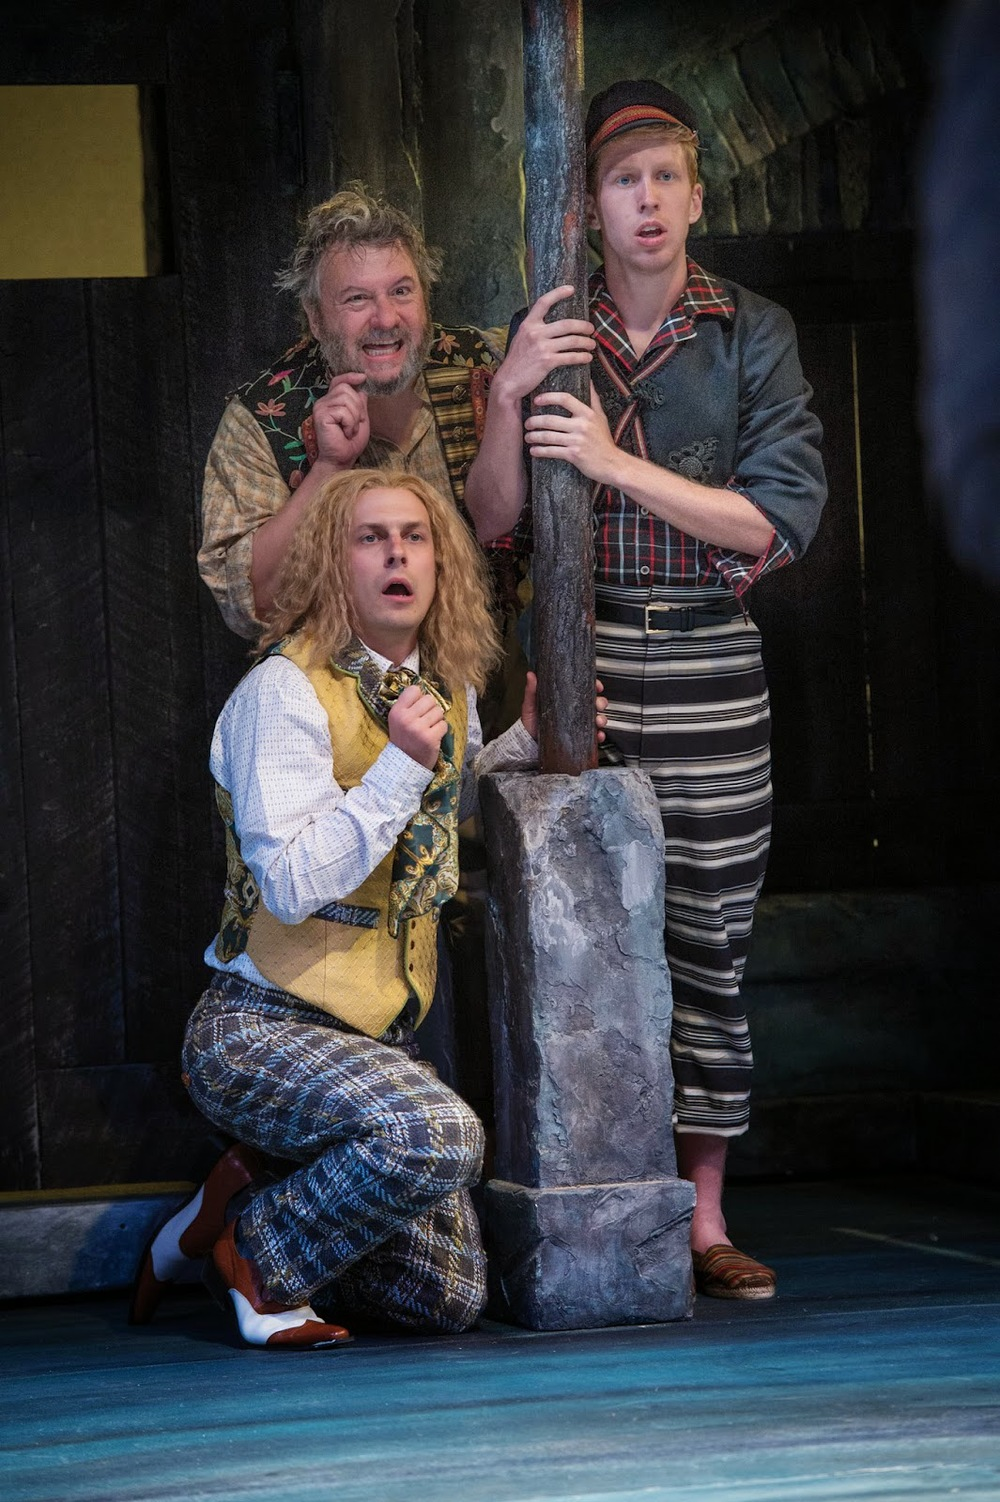 Quinn Mattfeld, Roderick Peeples and Eric Weiman in Twelfth Night. Photo by Karl Hugh.